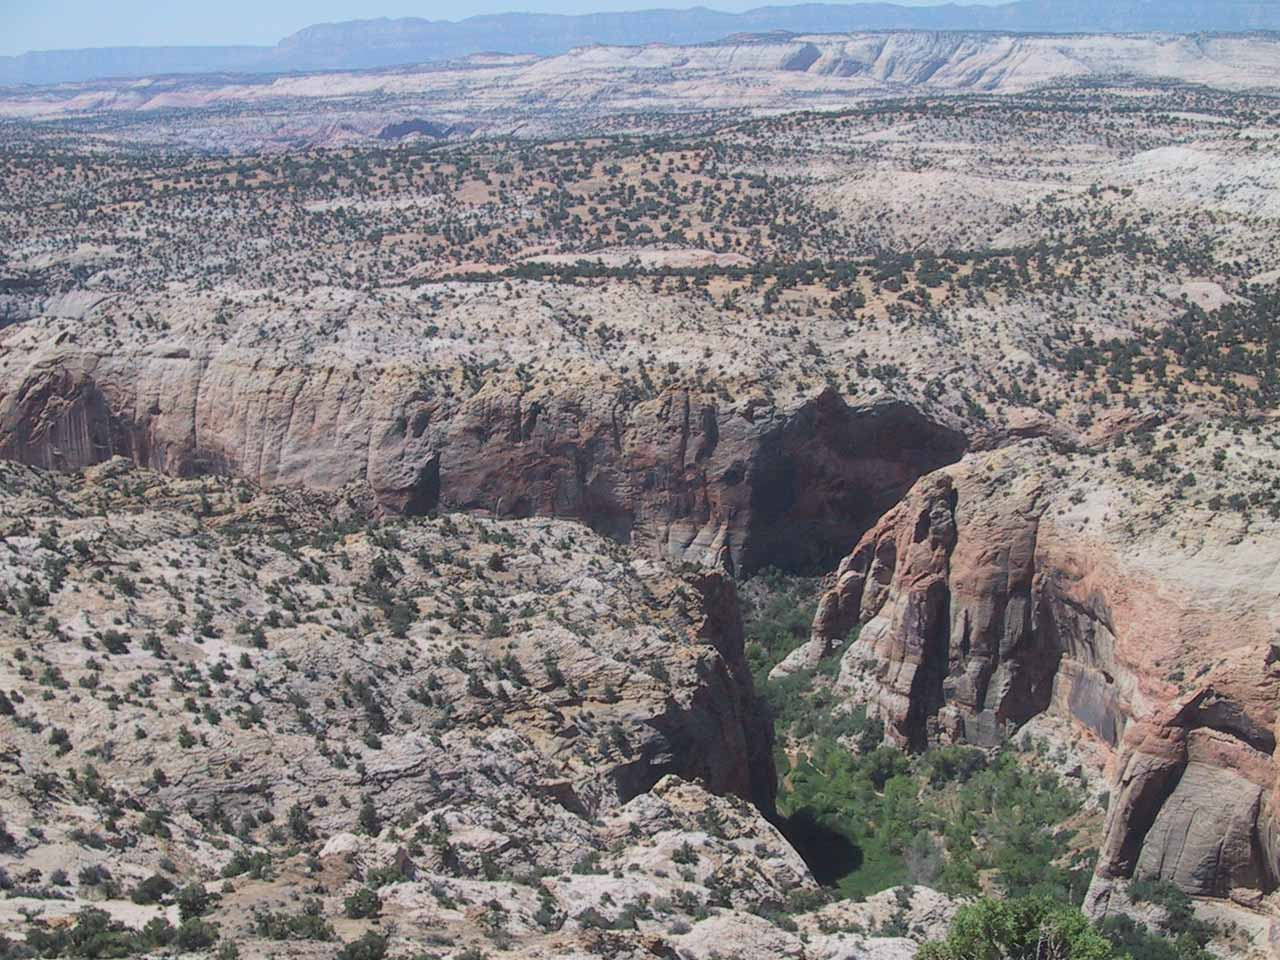 Looking down at Calf Creek Canyon